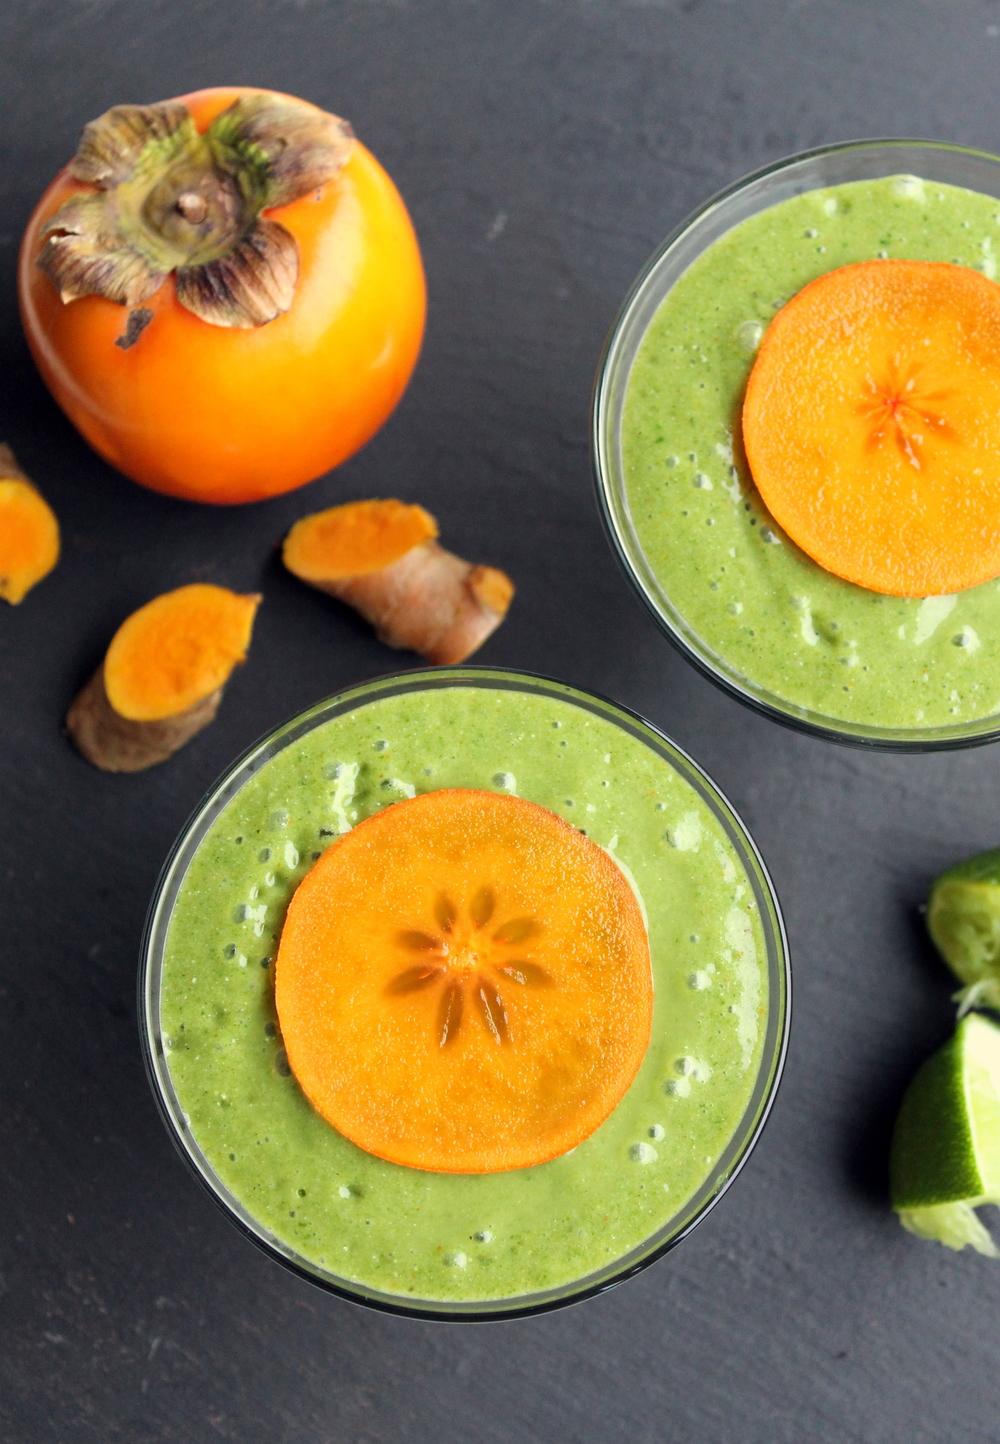 Spinach Persimmon Smoothie